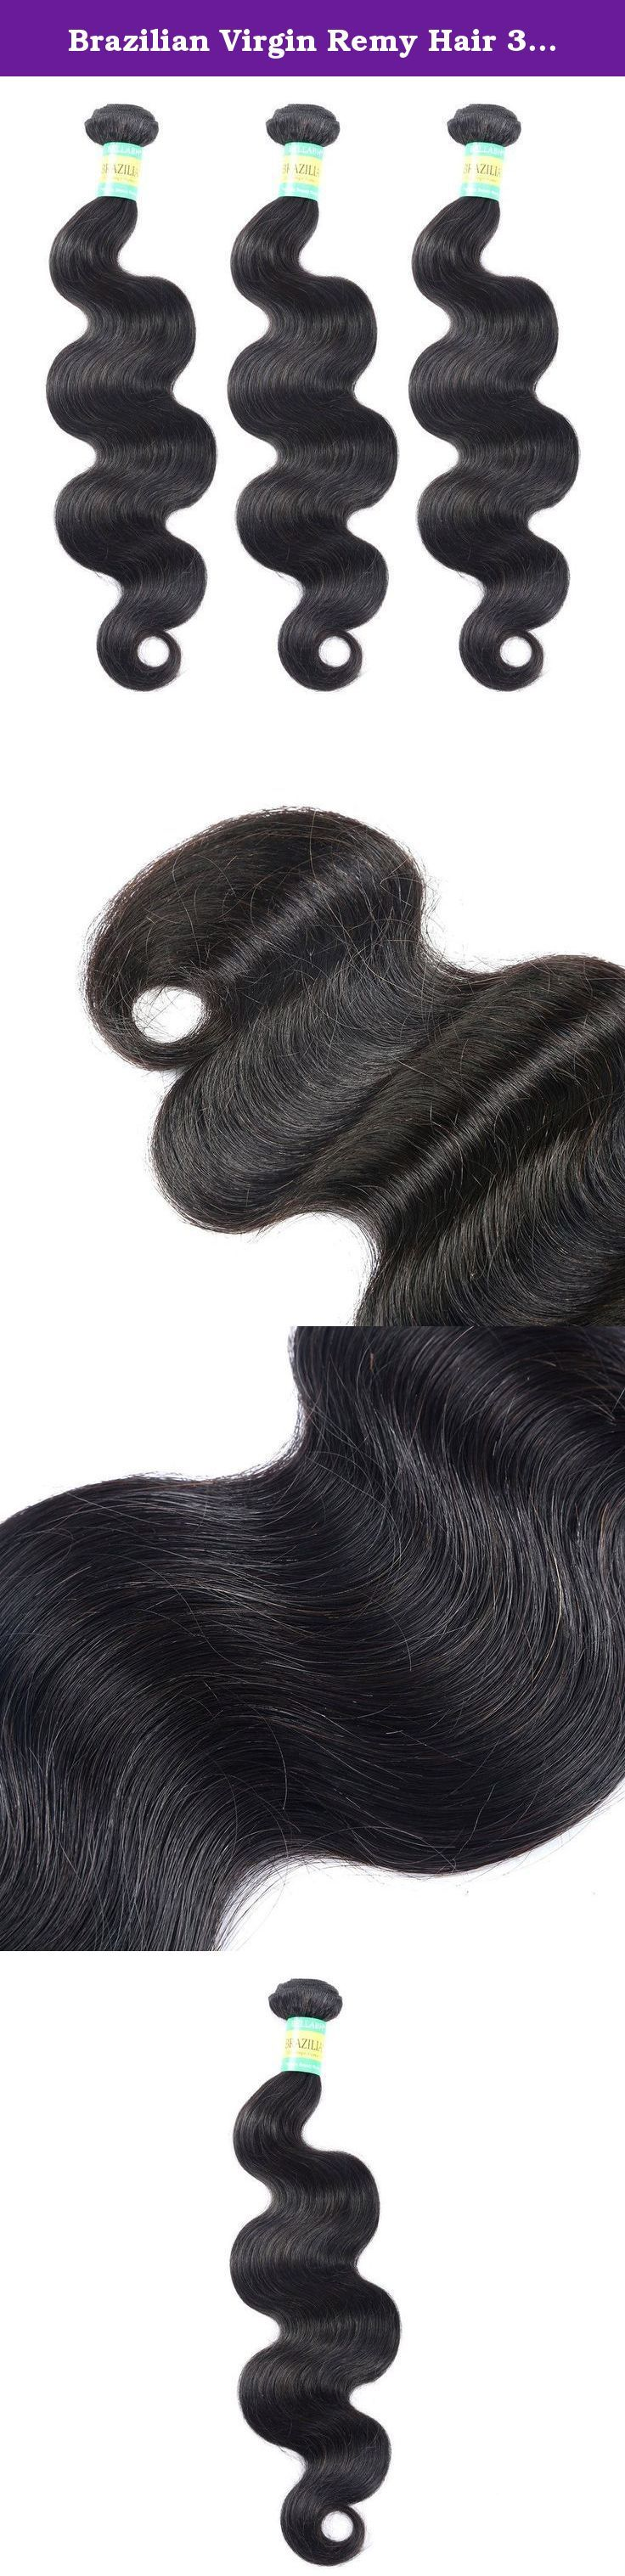 """Brazilian Virgin Remy Hair 3 Bundles, Body Wave, Virgin Unprocessed Hair,12""""-30"""" (3 Bundles 20inches). 100 grams per bundle.Total 3 bundles 300g in package. Hair type: 100% Brazilian Virgin hair, Unprocessed, Remy hair Good quality. Color: Natural color Weight: about 100g (95grams--105grams) Style: Body Weave (Can be Pressed, Dyed or Curled) The hair can be dyed to any colour of your choice. It can also be permed, straightened, tongued and treated just like your own natural hair. Full…"""